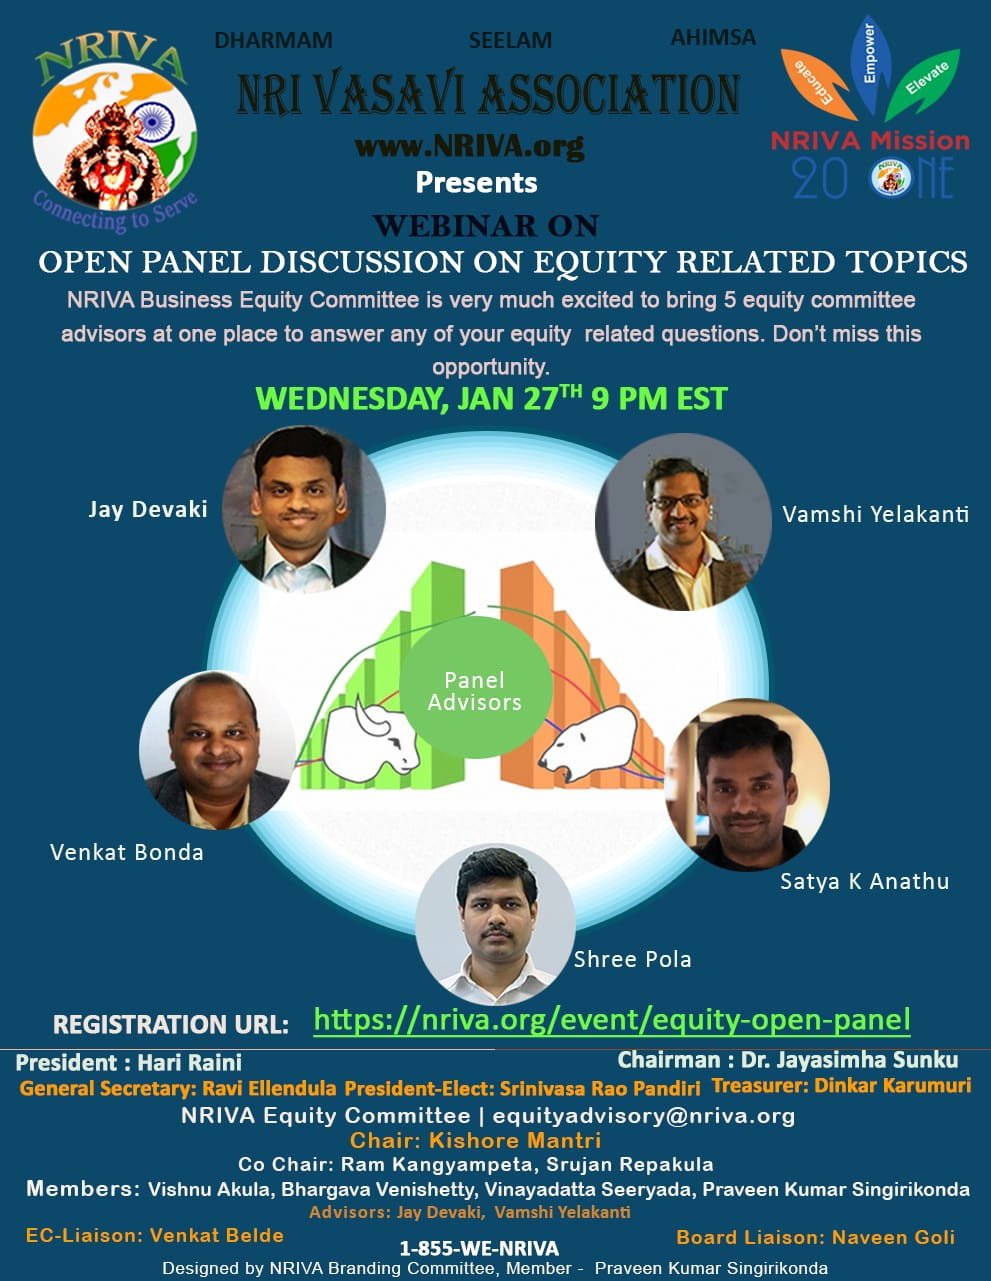 Equity Related Open Panel Discussion